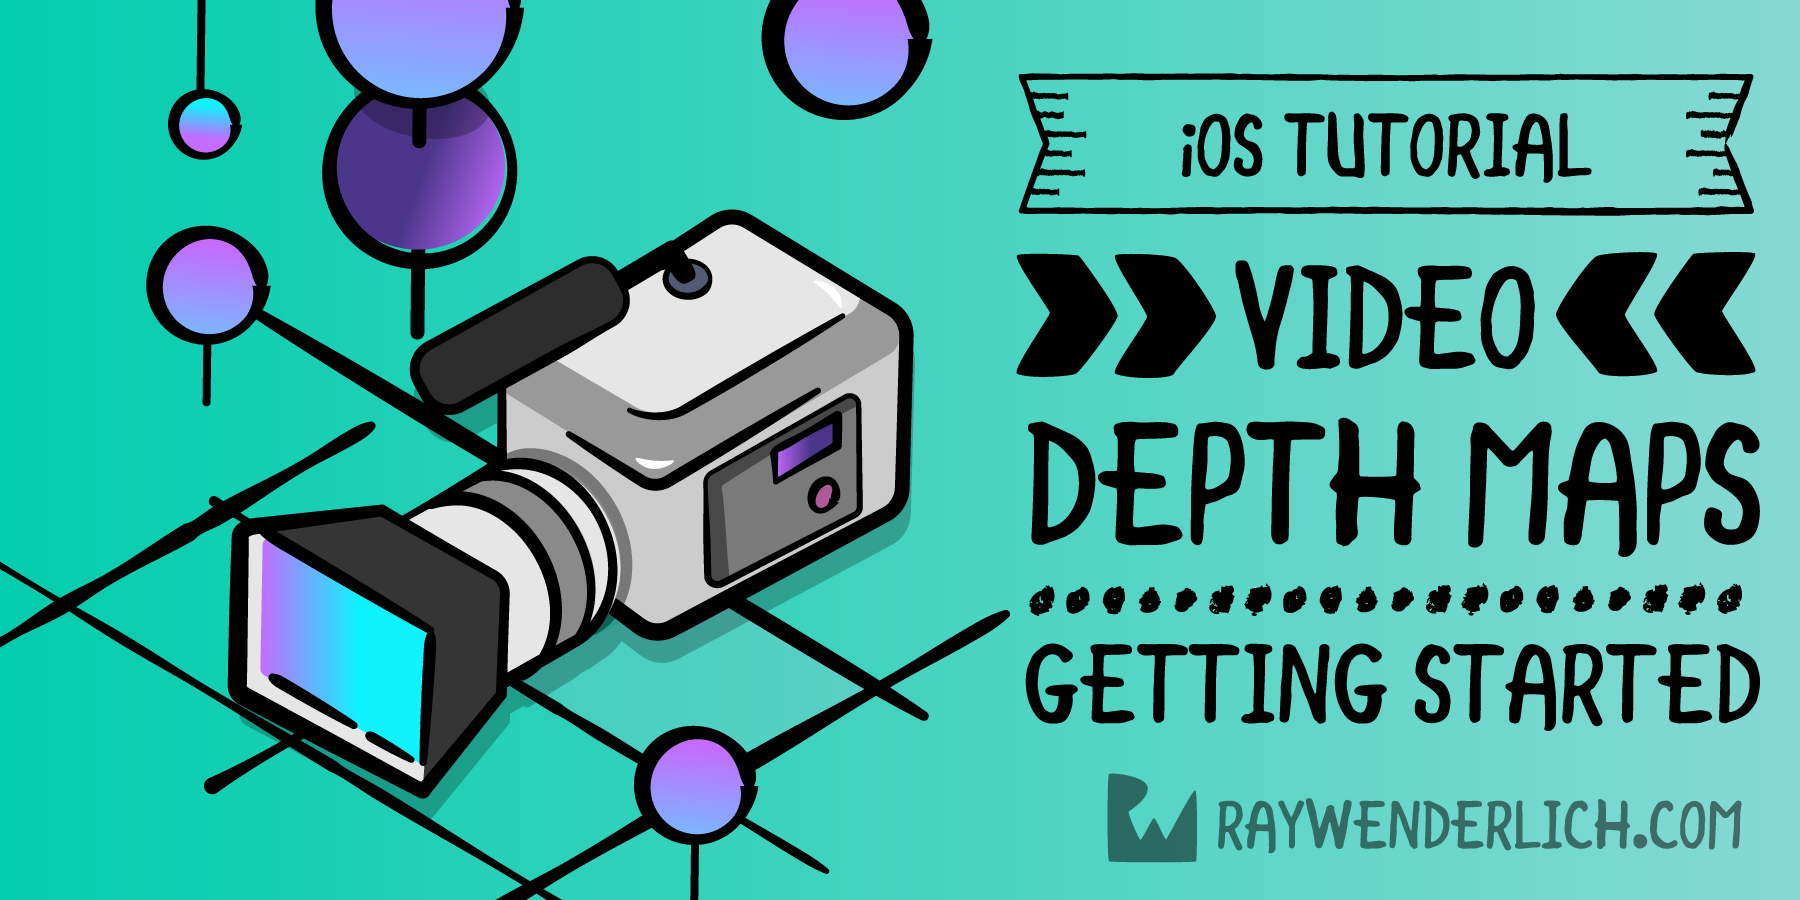 Video Depth Maps Tutorial for iOS: Getting Started [FREE]